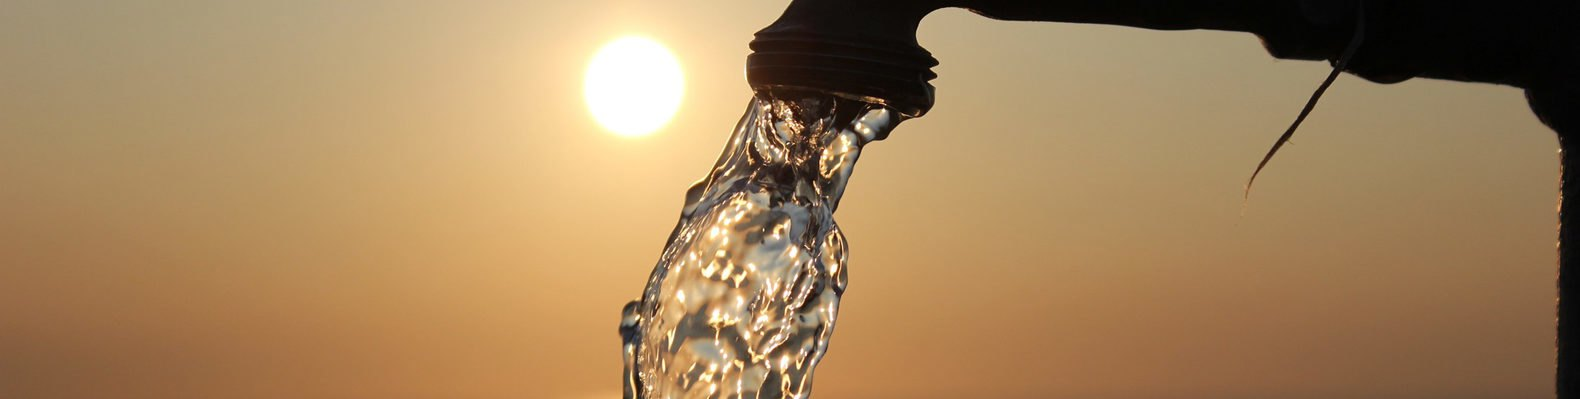 outdoor faucet running water at sunset